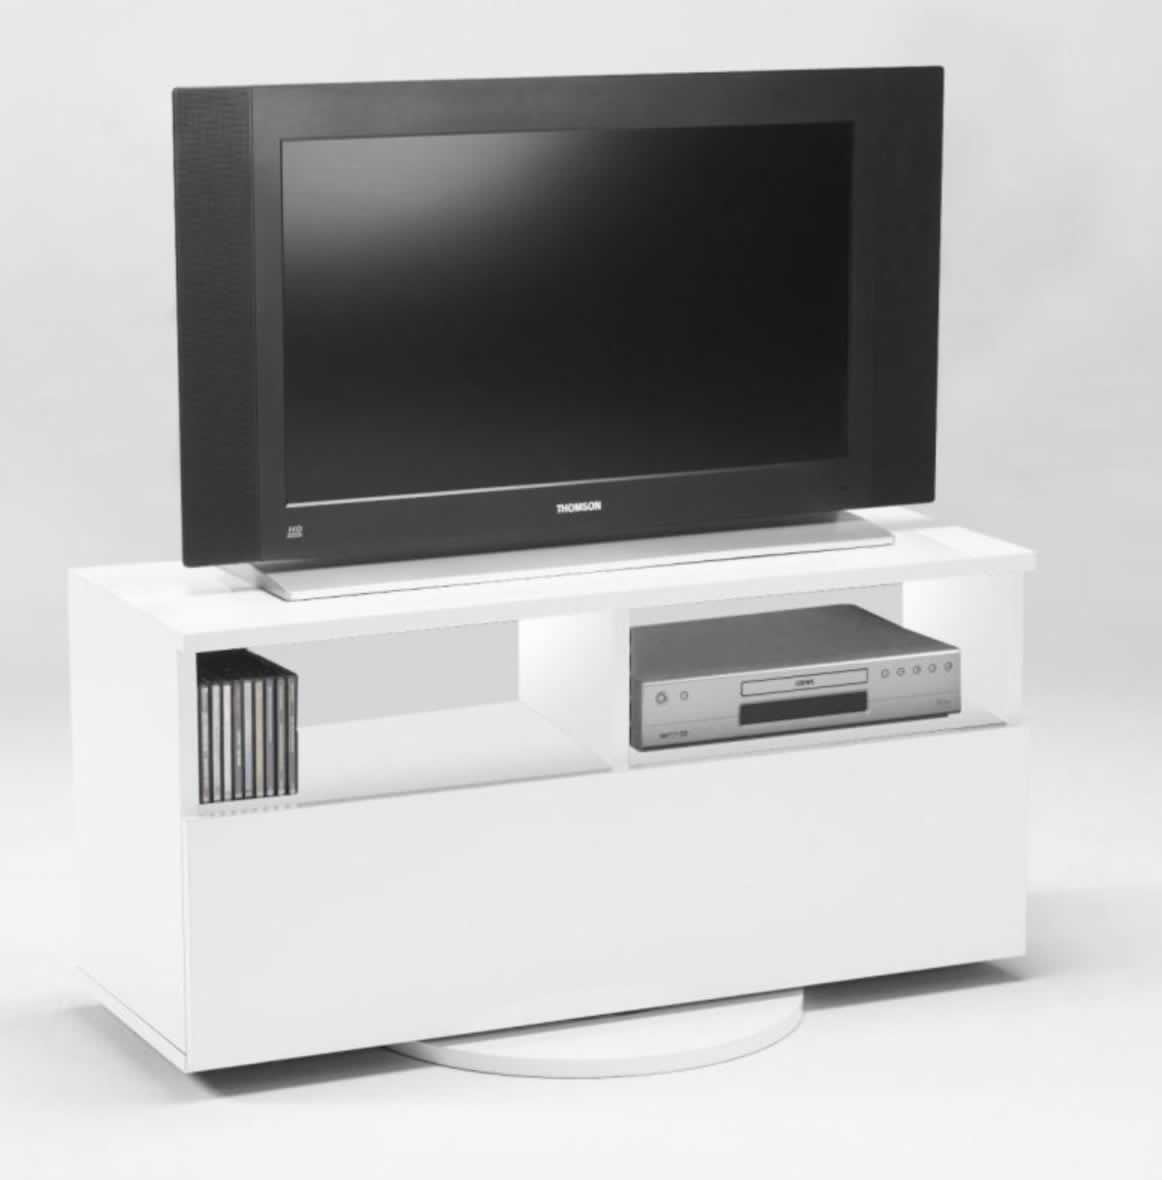 hifi tv rack cubic ii weiss dekor drehbar neu ovp 6443. Black Bedroom Furniture Sets. Home Design Ideas